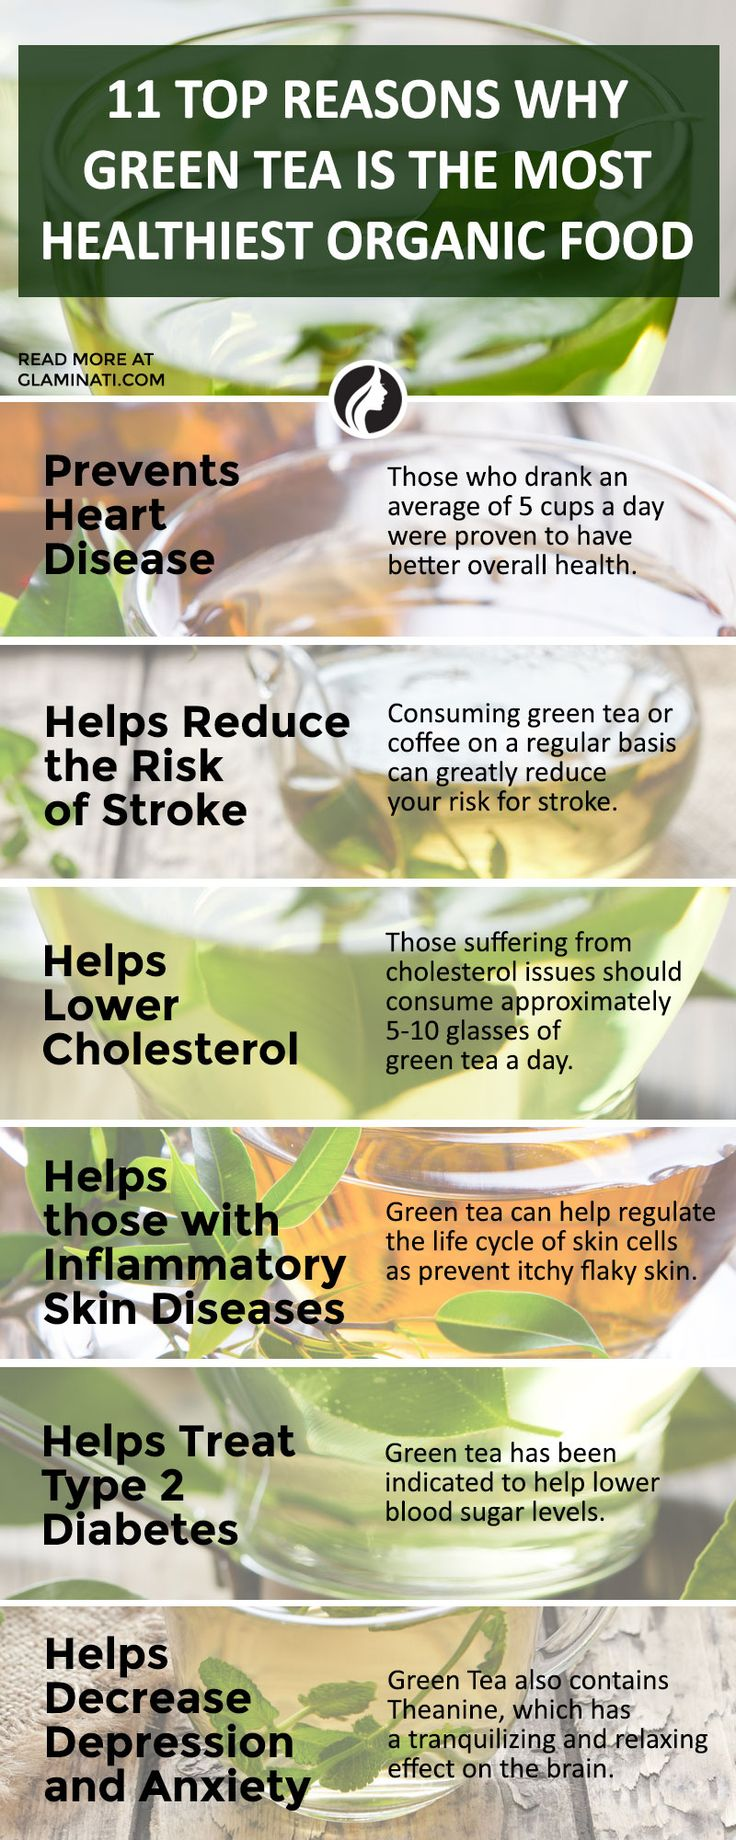 Green tea, a product that is native to both India and China, has recently become…